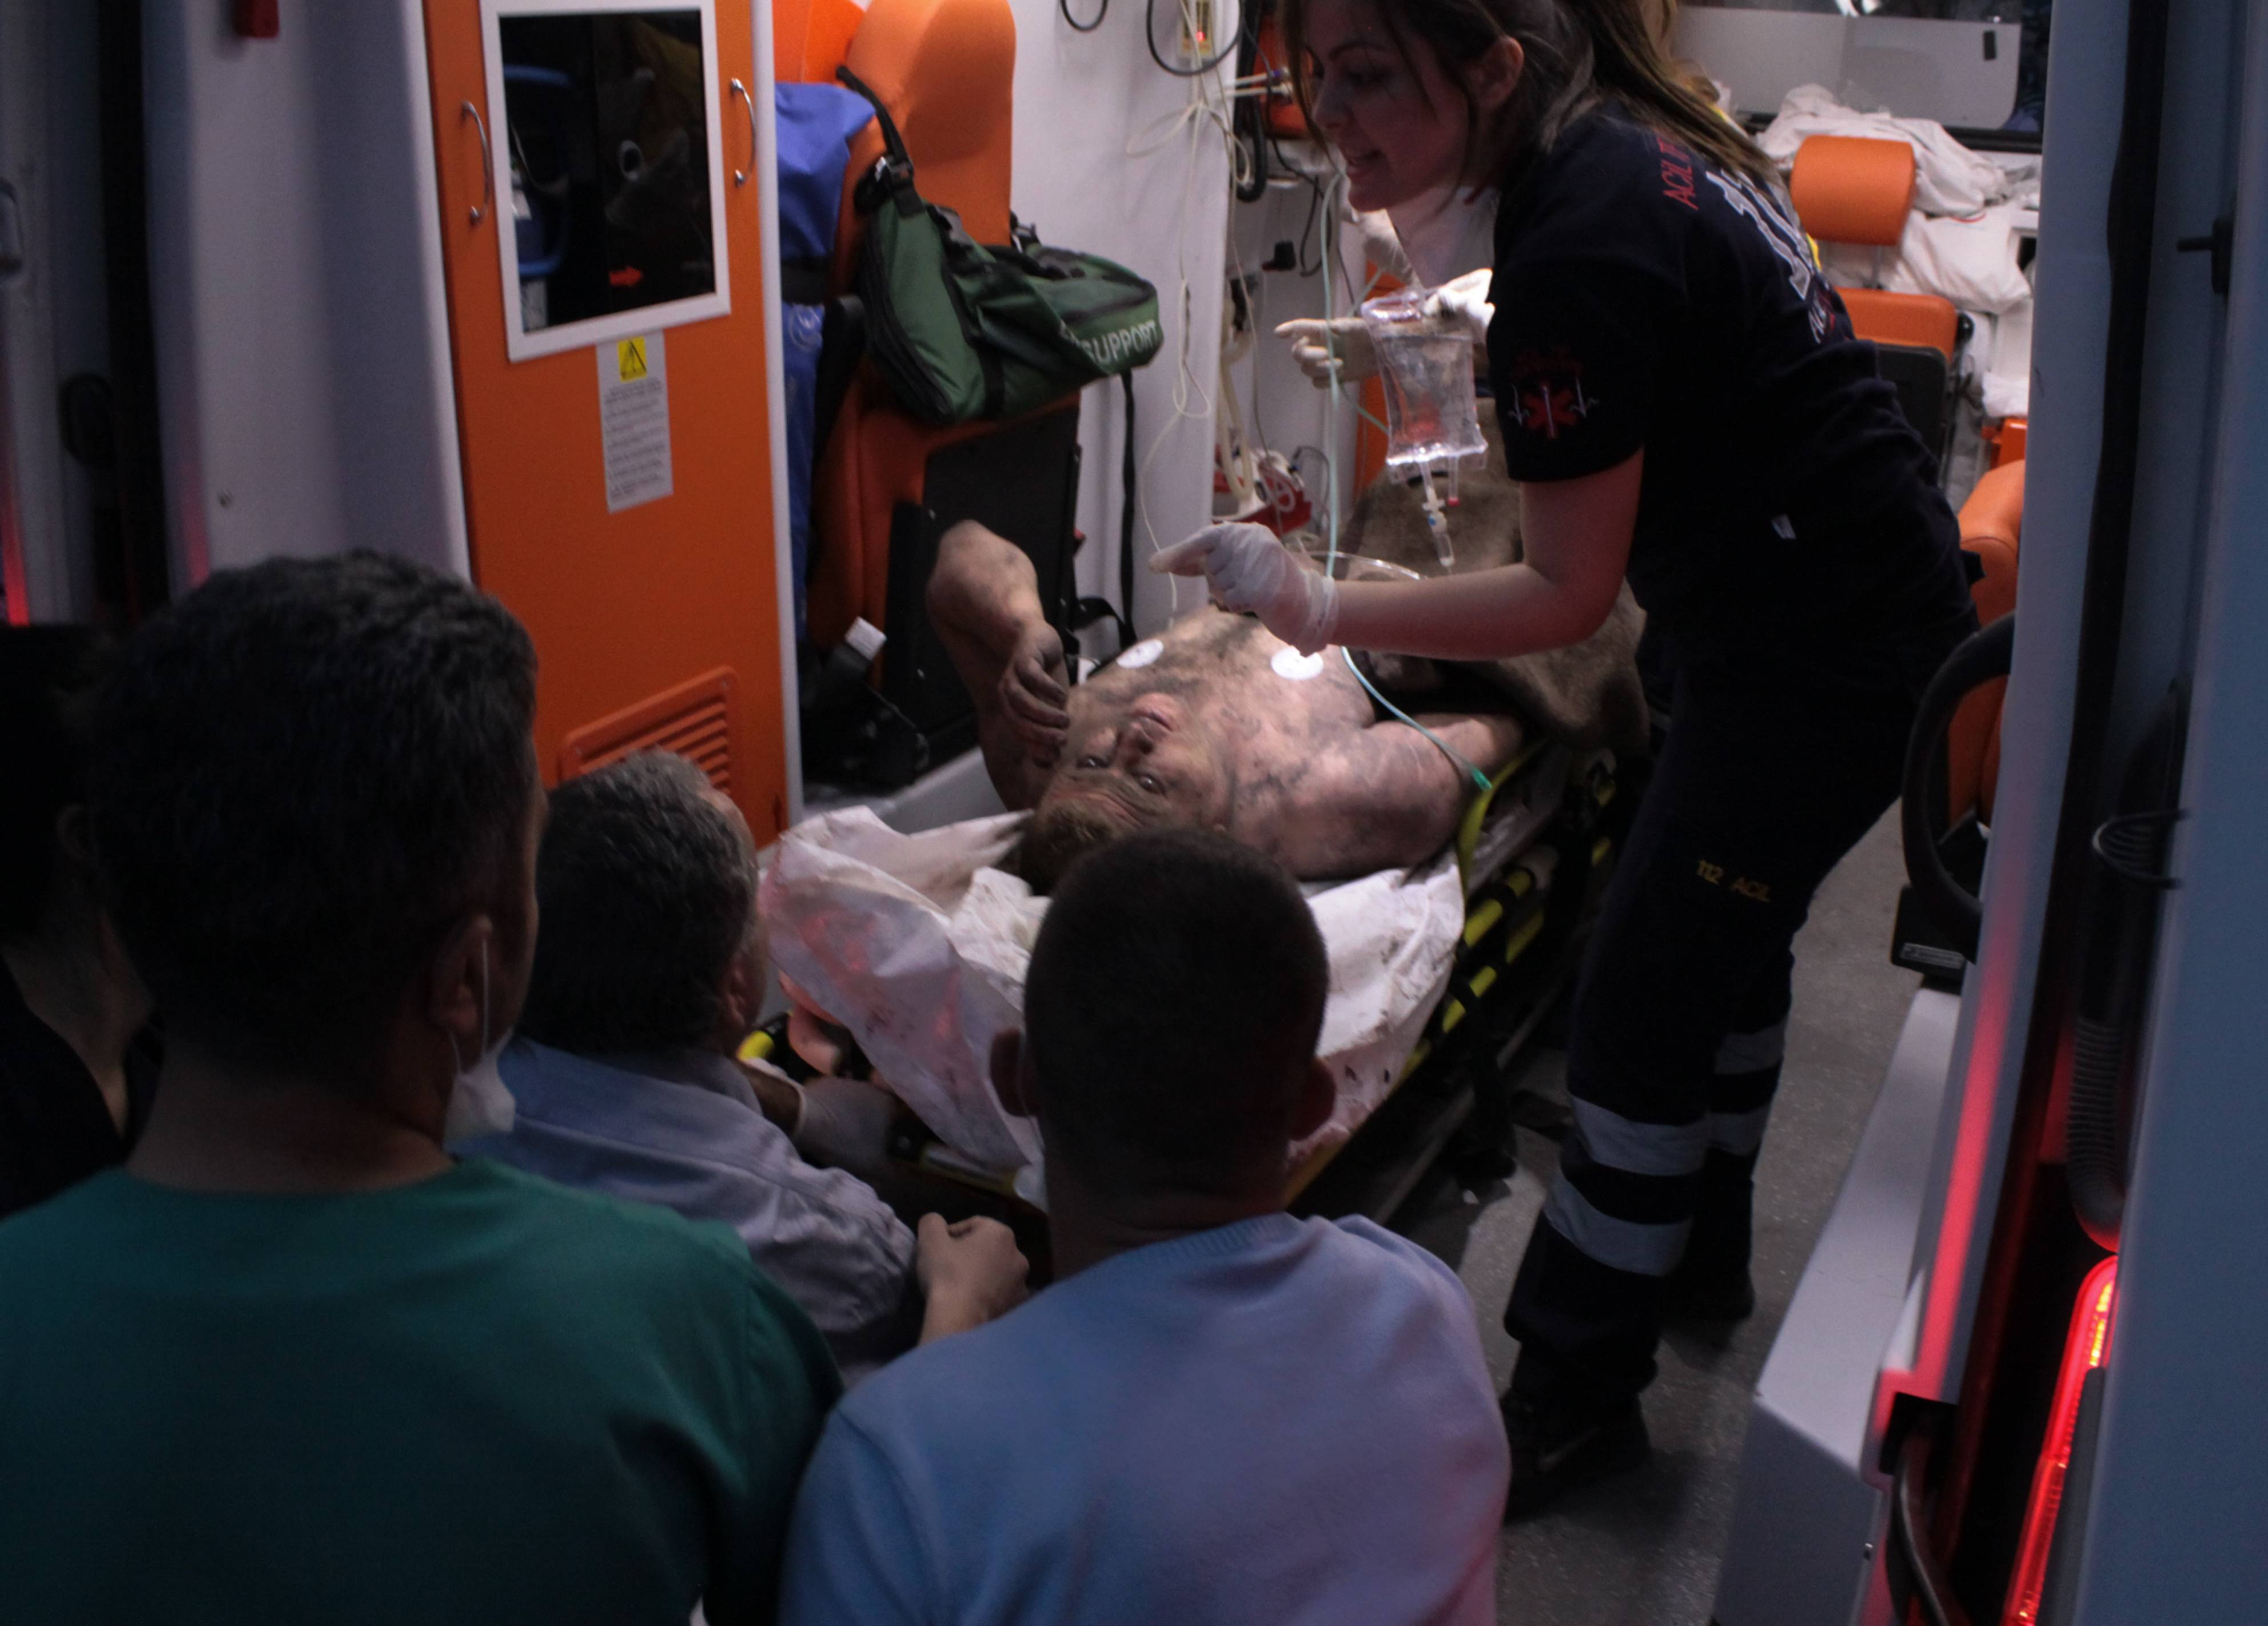 Medics place an injured miner into an ambulance after an explosion and fire at a coal mine in Soma, in western Turkey, Tuesday. An explosion and fire at the mine killed at least 166 workers.